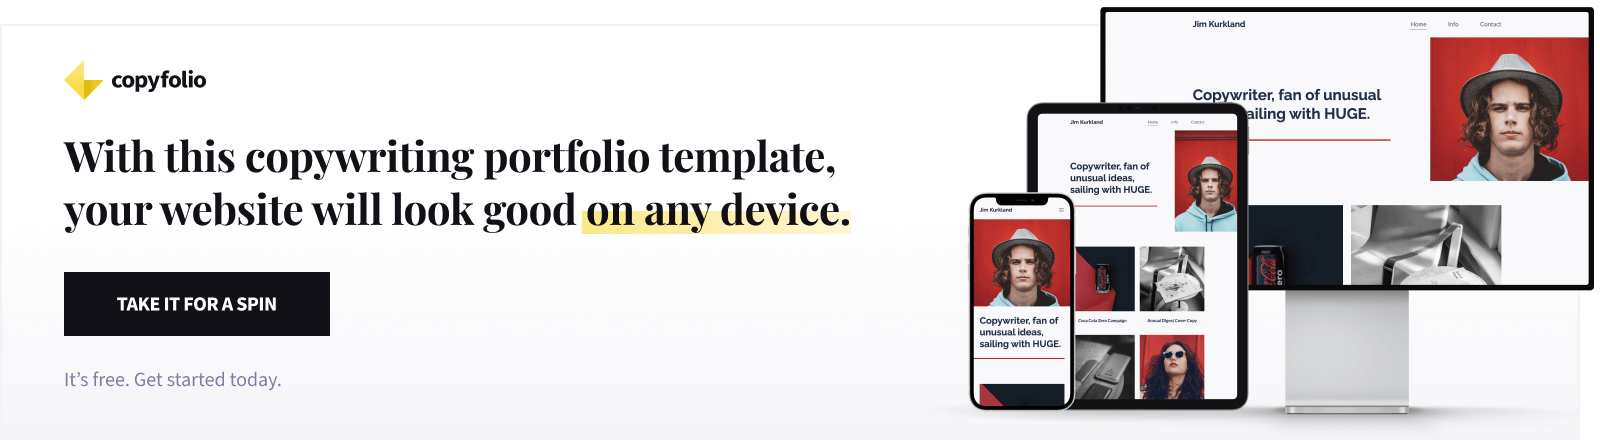 With this copywriting portfolio template, your website will look good on any device. Take it for a spin!